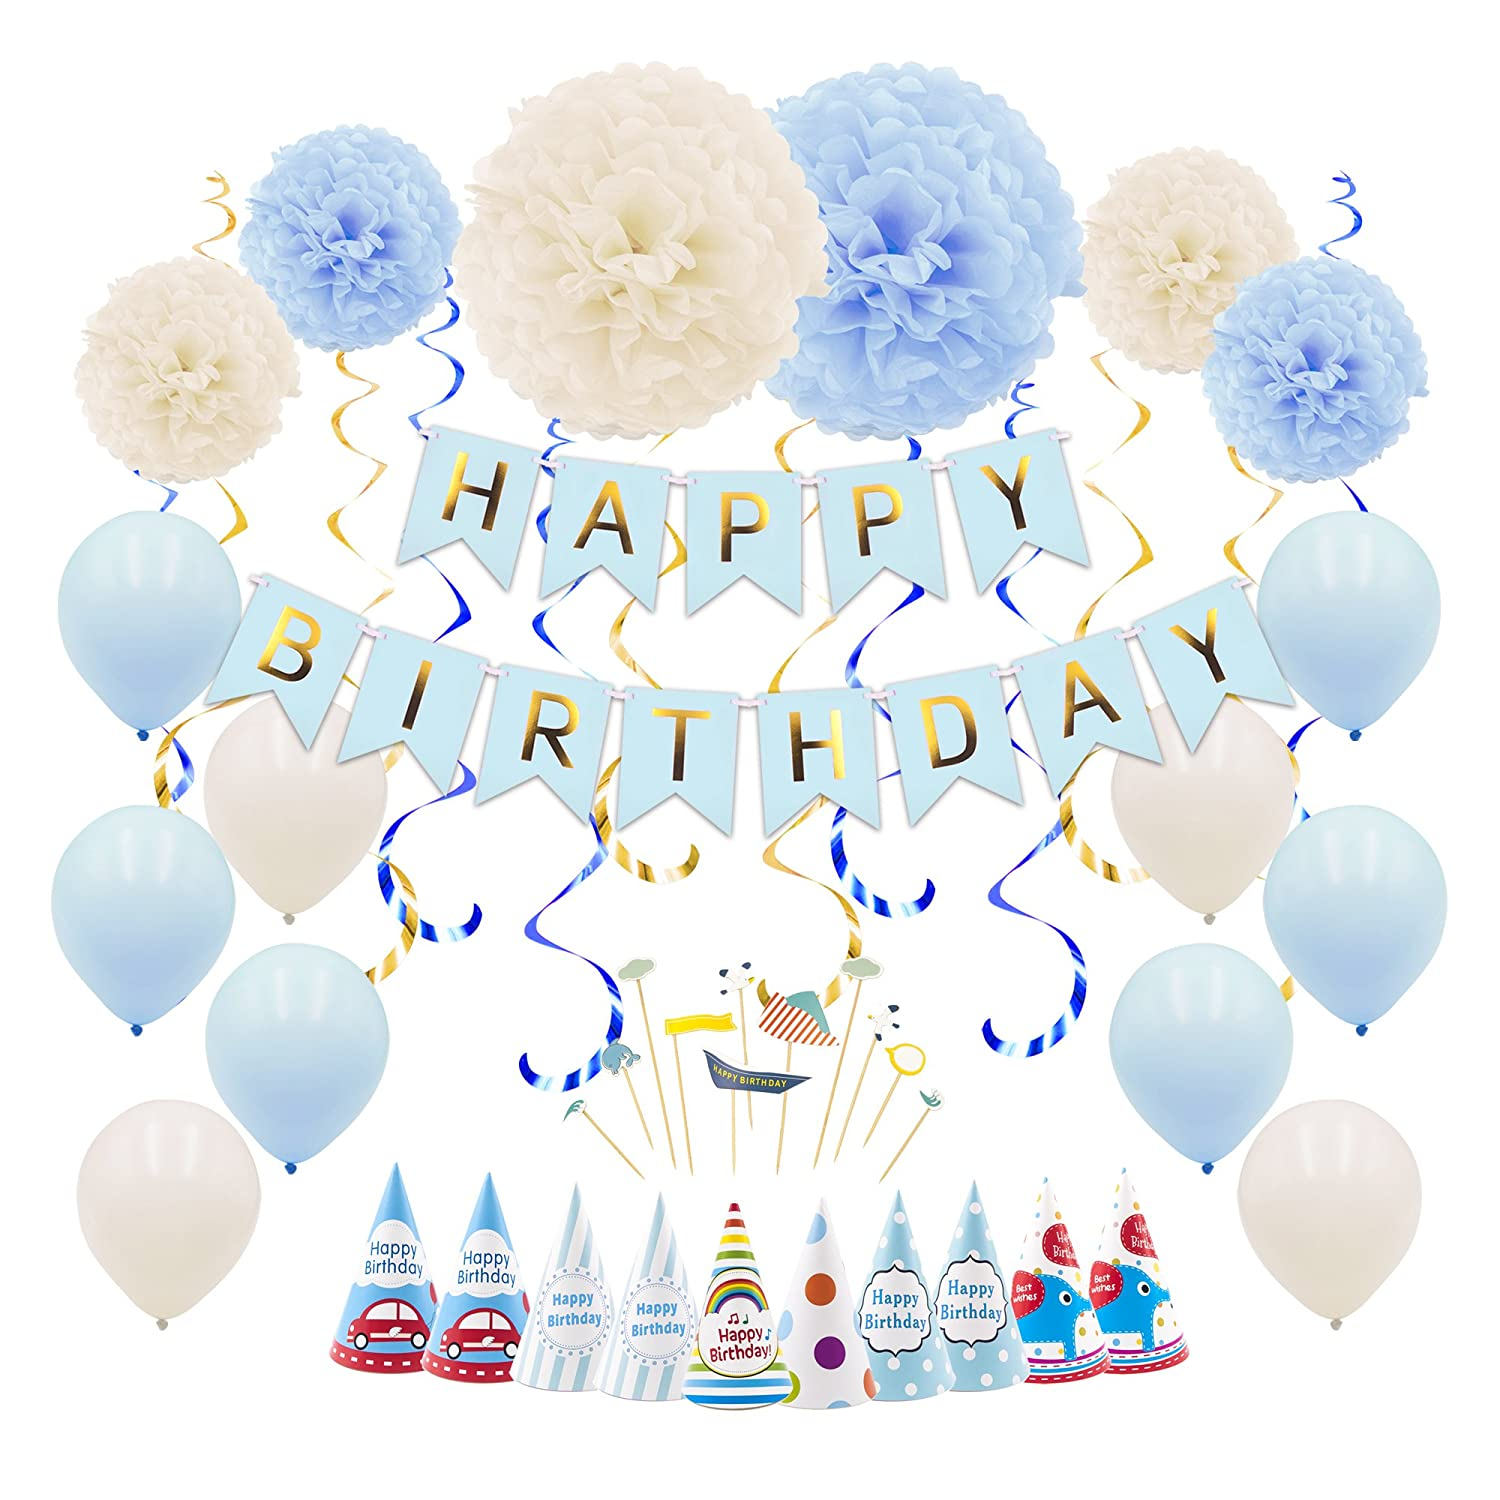 Hanging Swirls Blue Balloons Cake Flag Paper Flower Ball Ribbon MAPLE UK 49pcs Happy Birthday Decoration Supplies Party Decorations for Boys Men with Birthday Banner Paper Hats